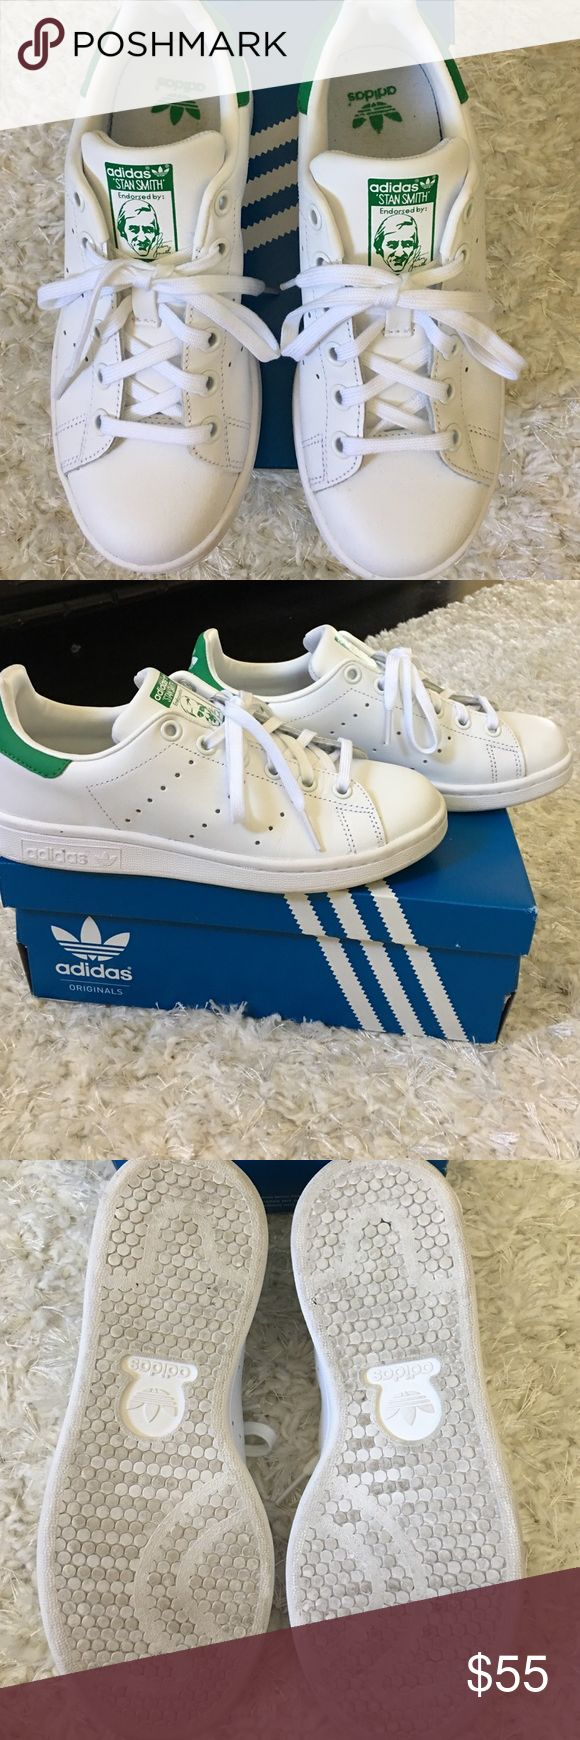 adidas stan smith size 4